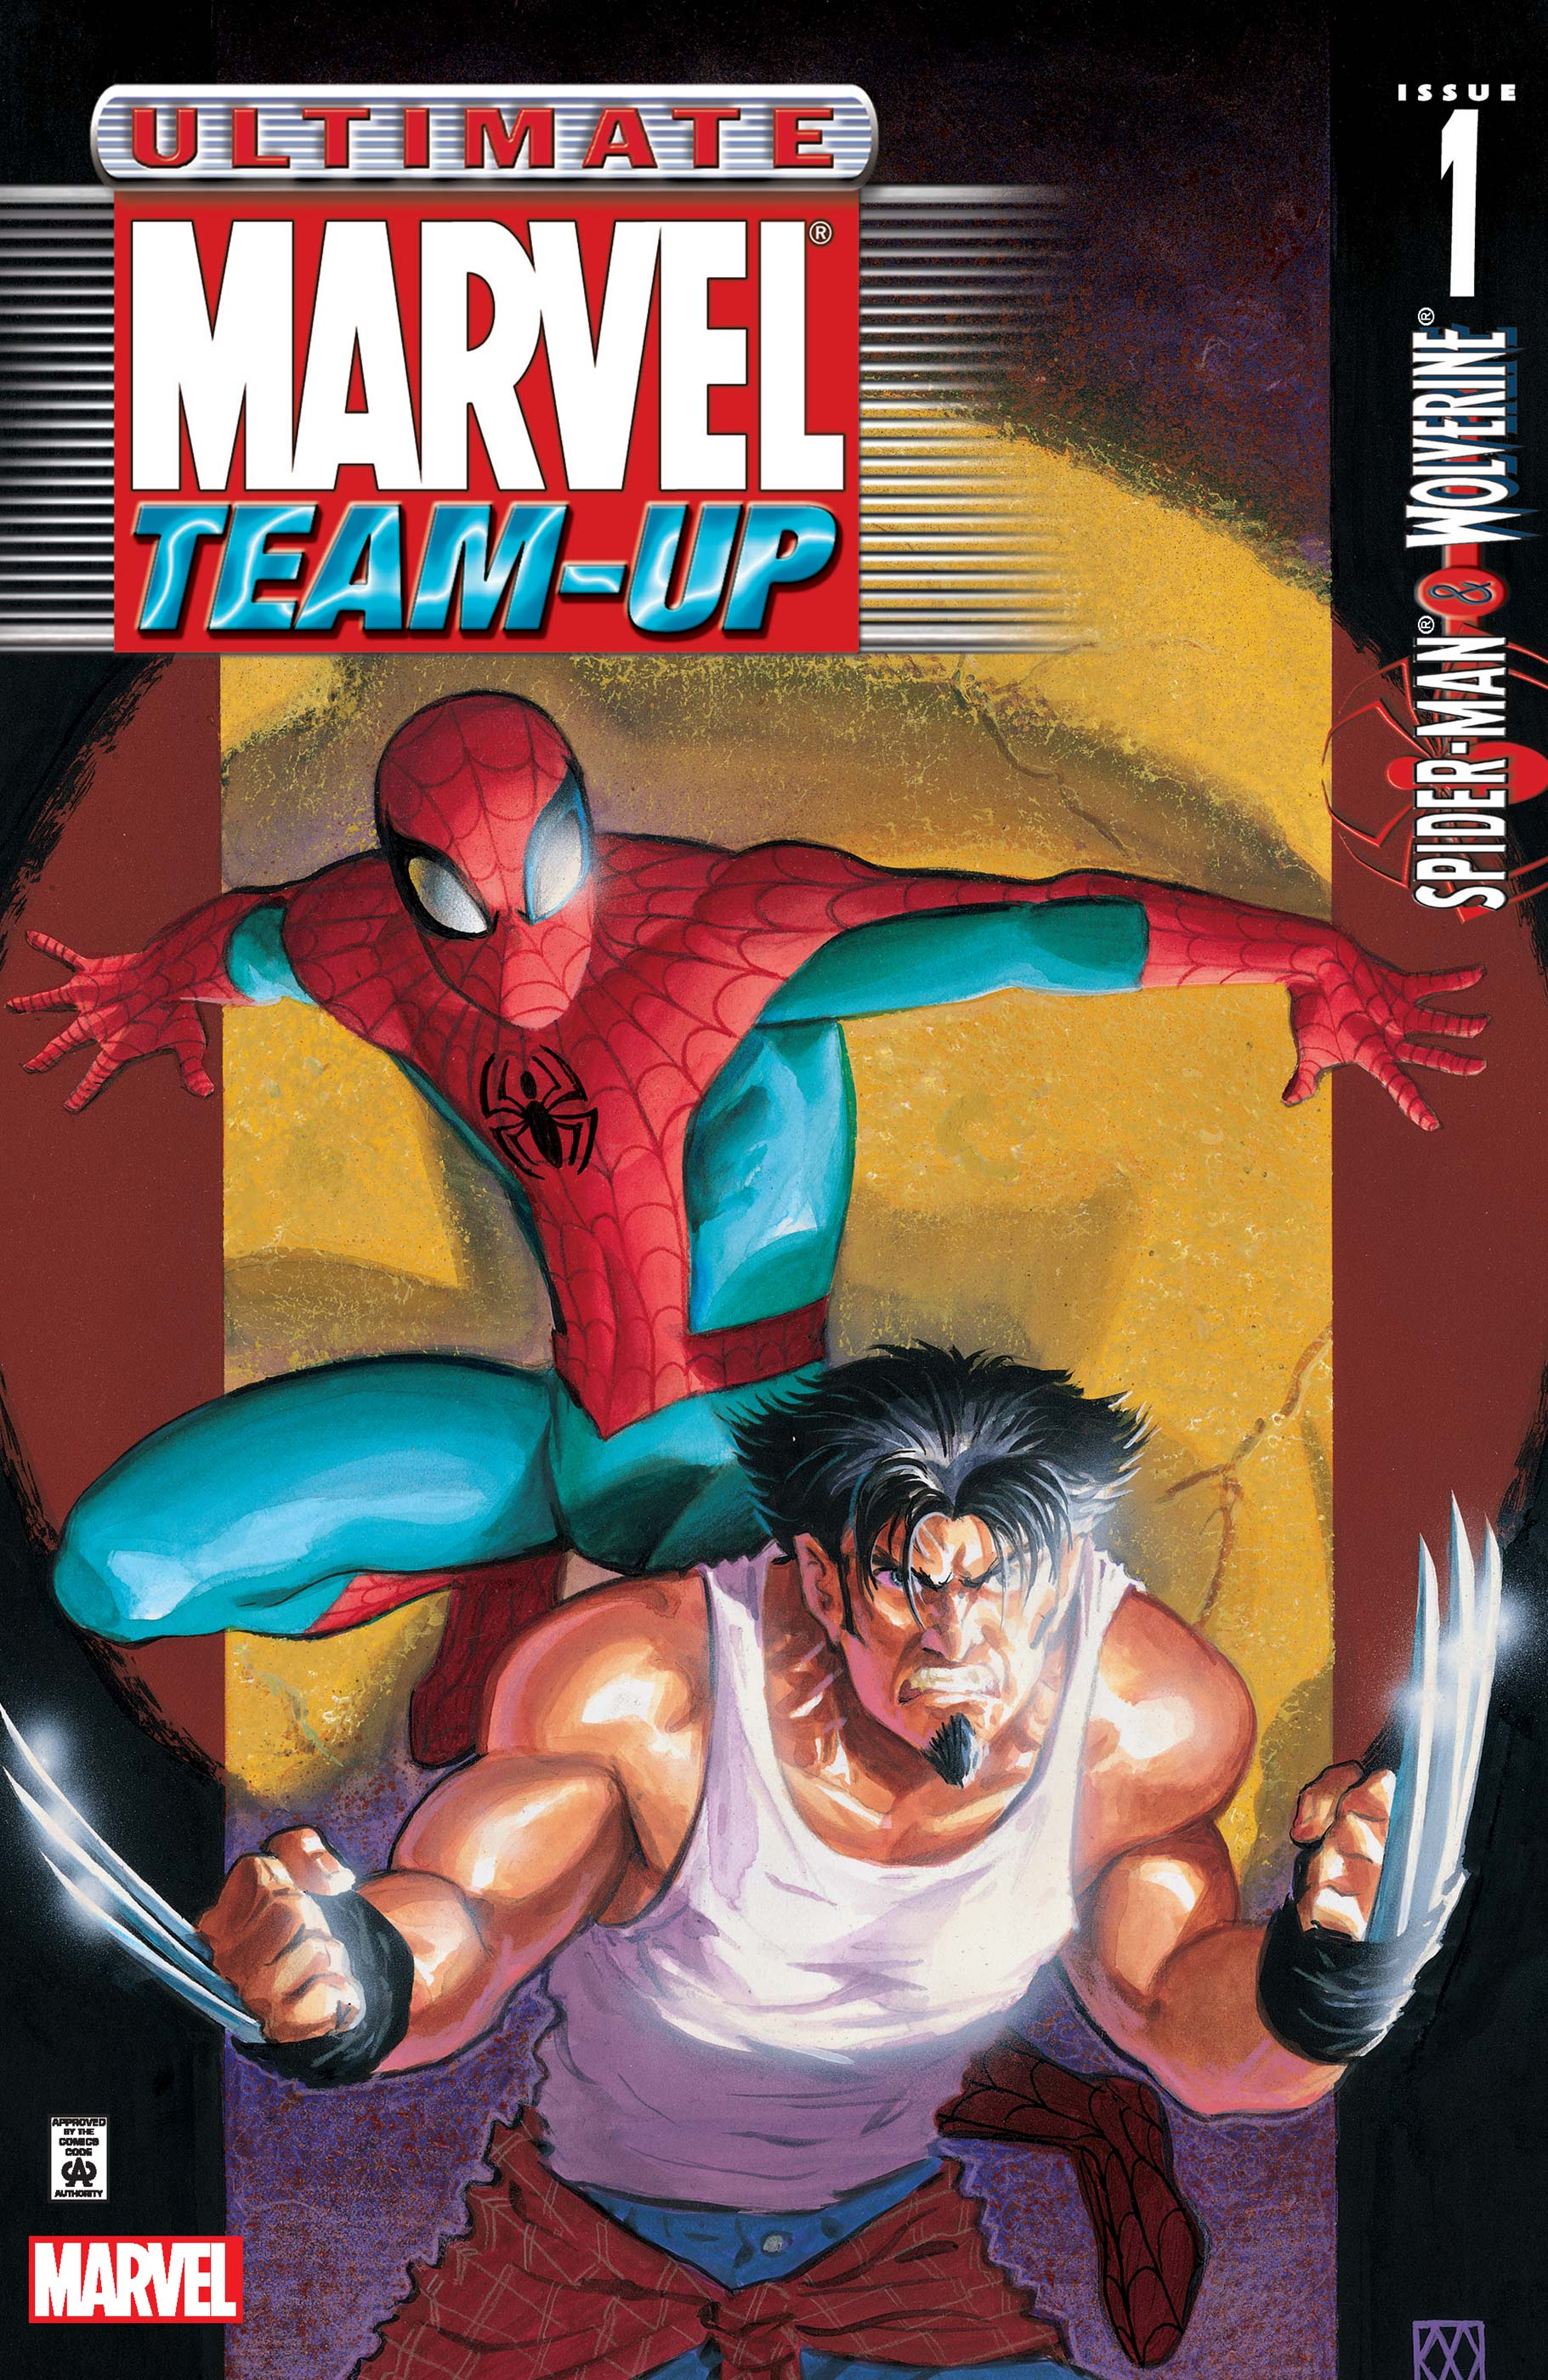 Ultimate Marvel Team-Up (2001) #1